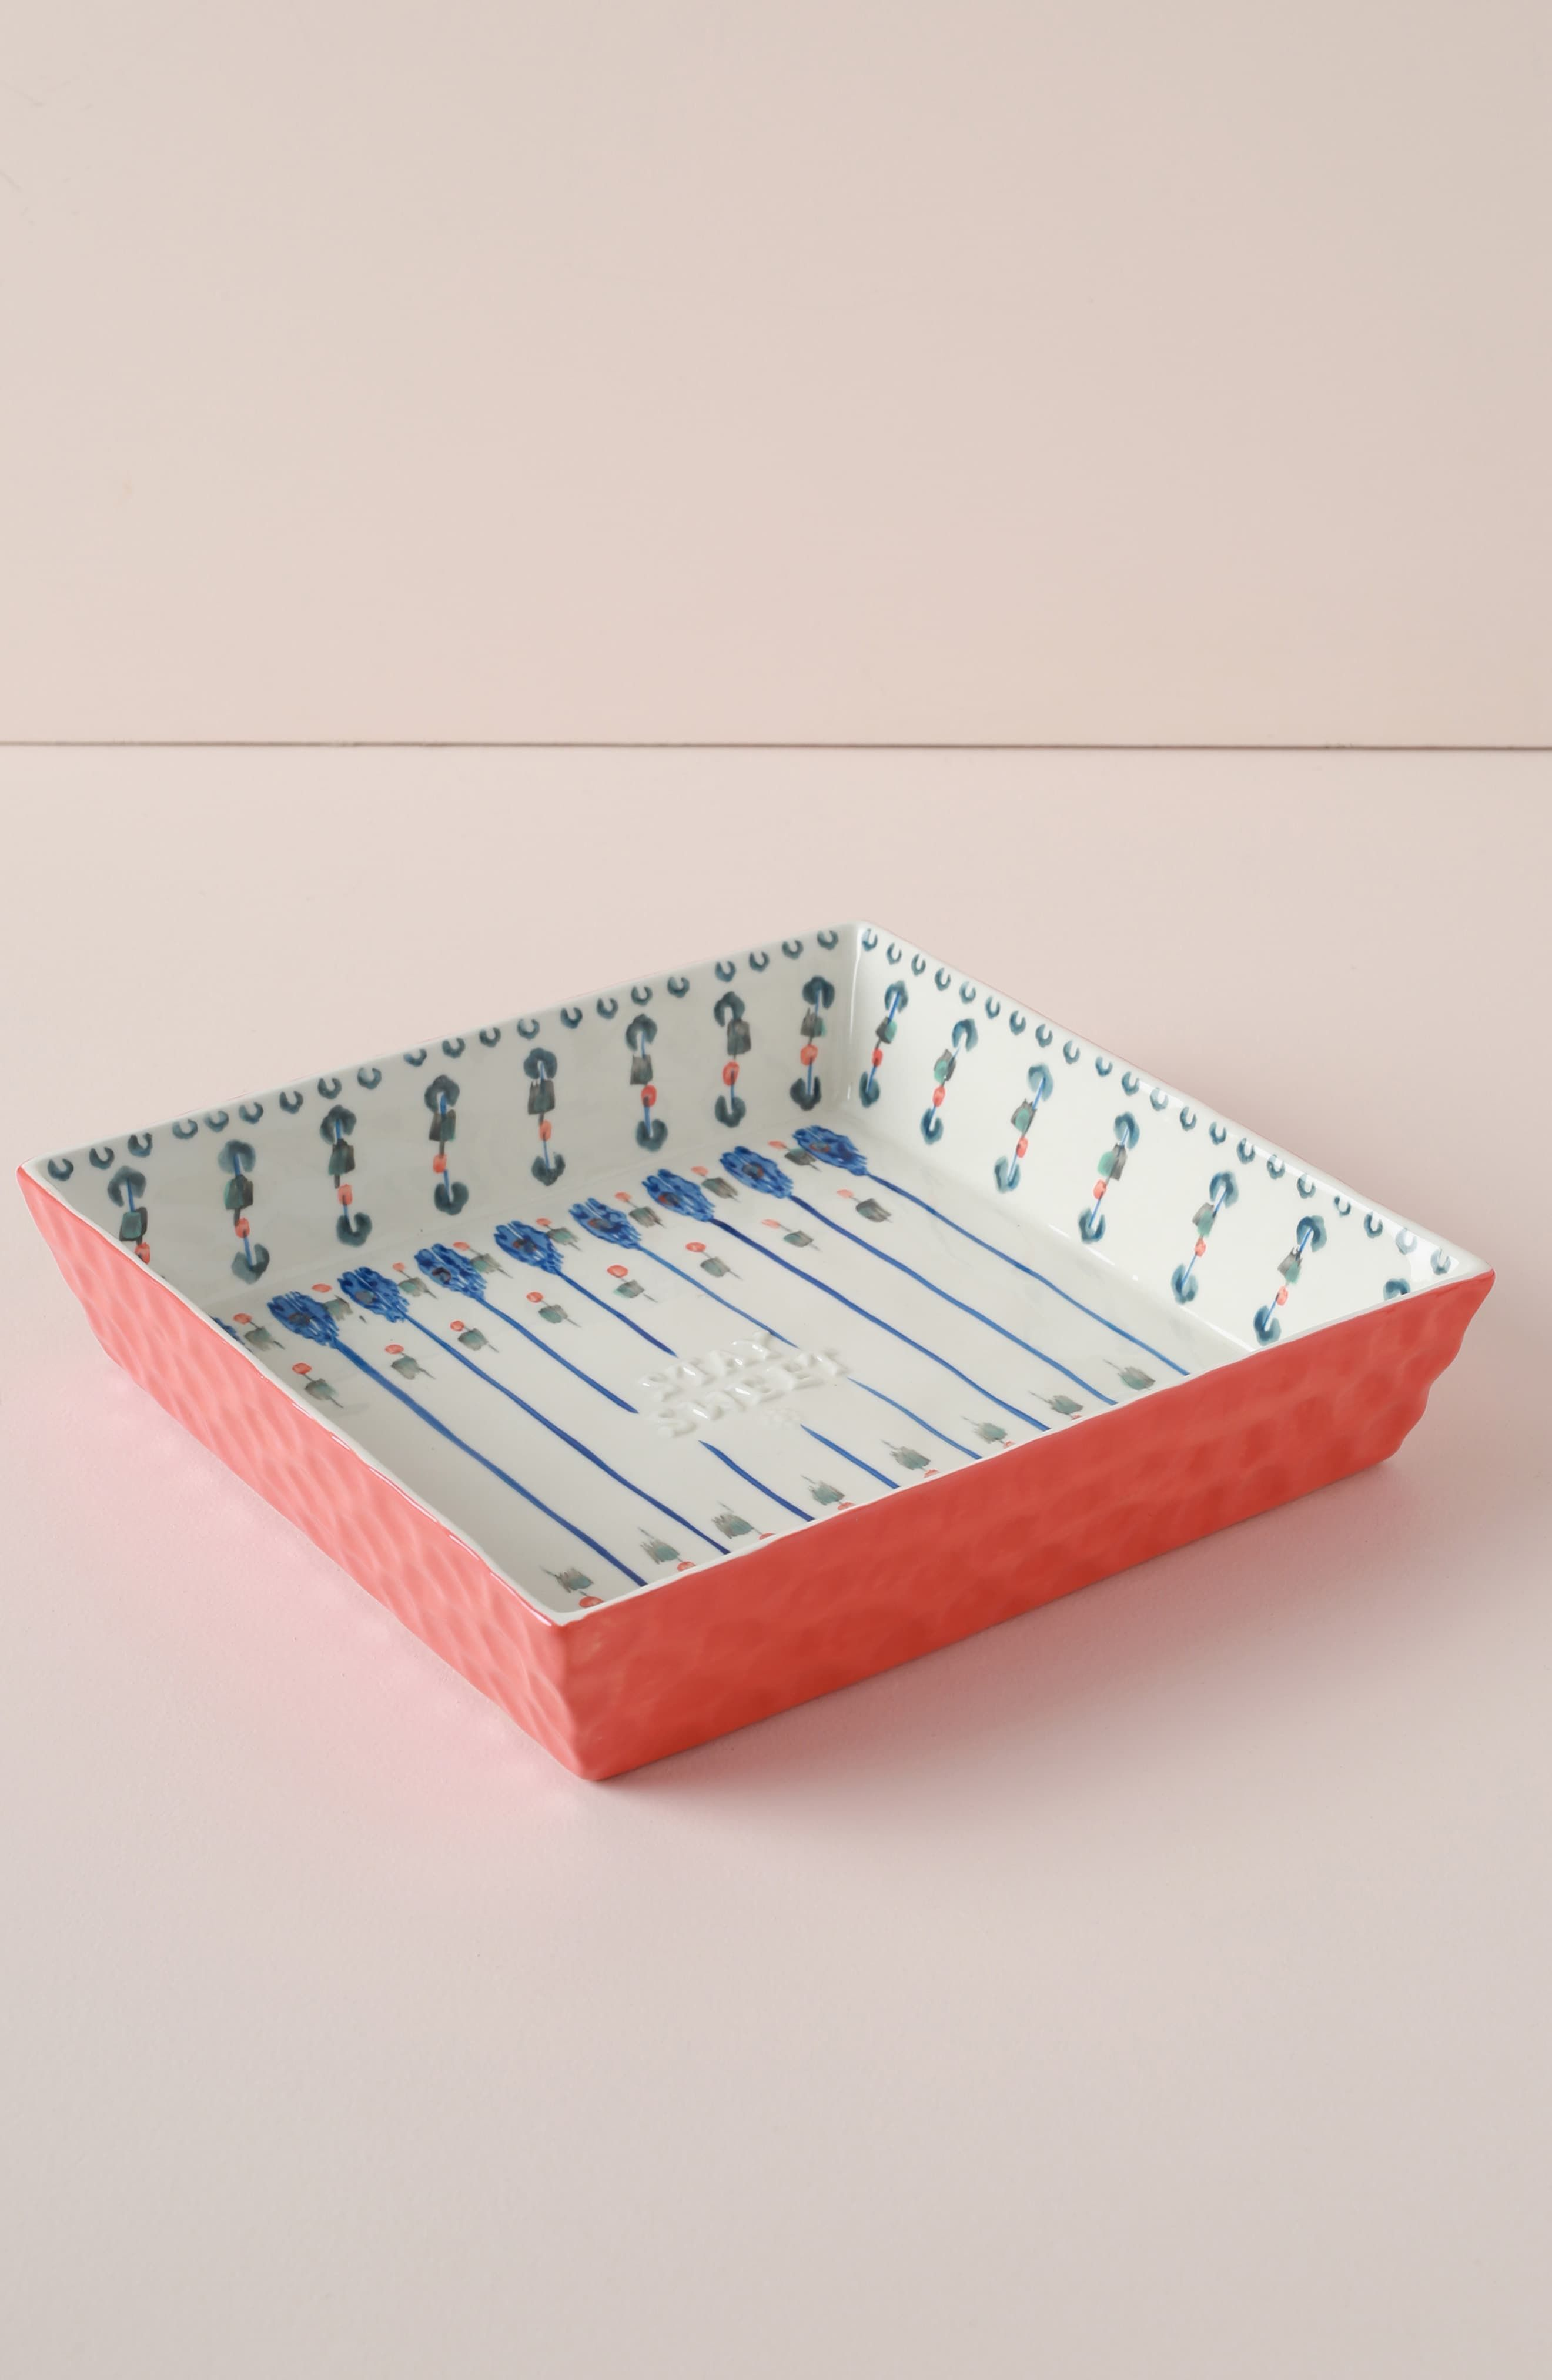 Anthropologie Home Daily Bakeware Brownie Pan Size One Size